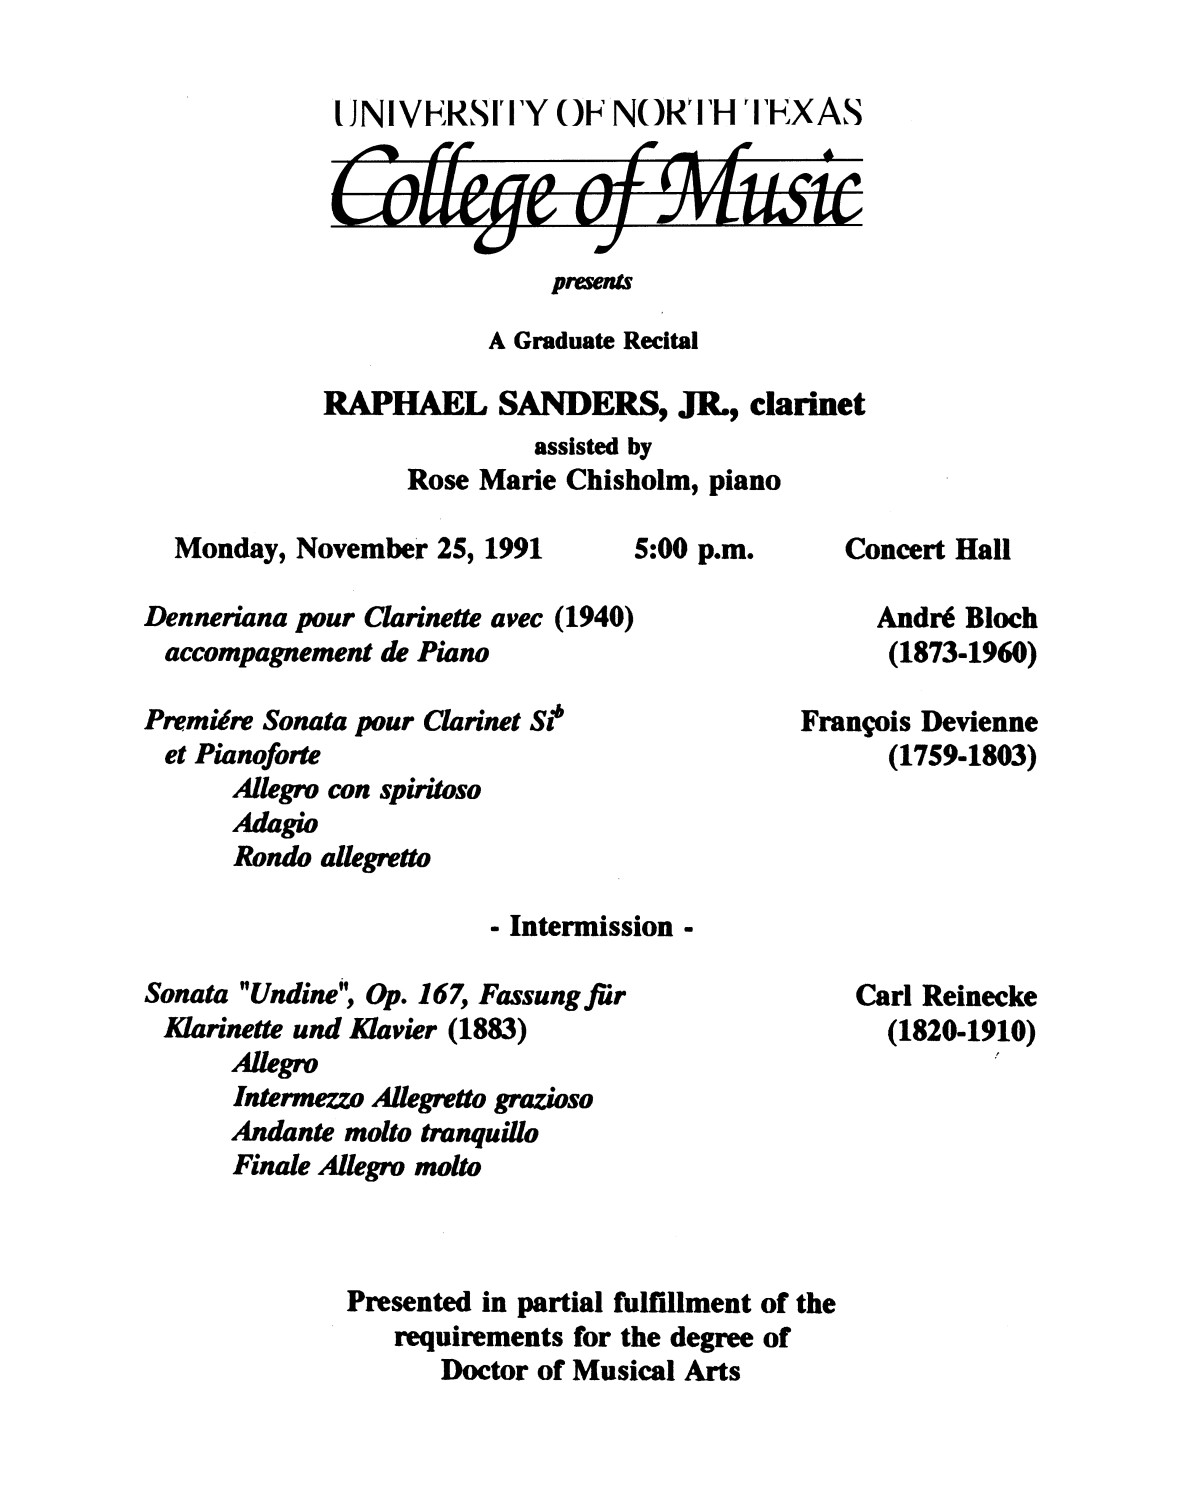 College of Music program book 1991-1992 Student Performances Vol. 2                                                                                                      [Sequence #]: 84 of 310